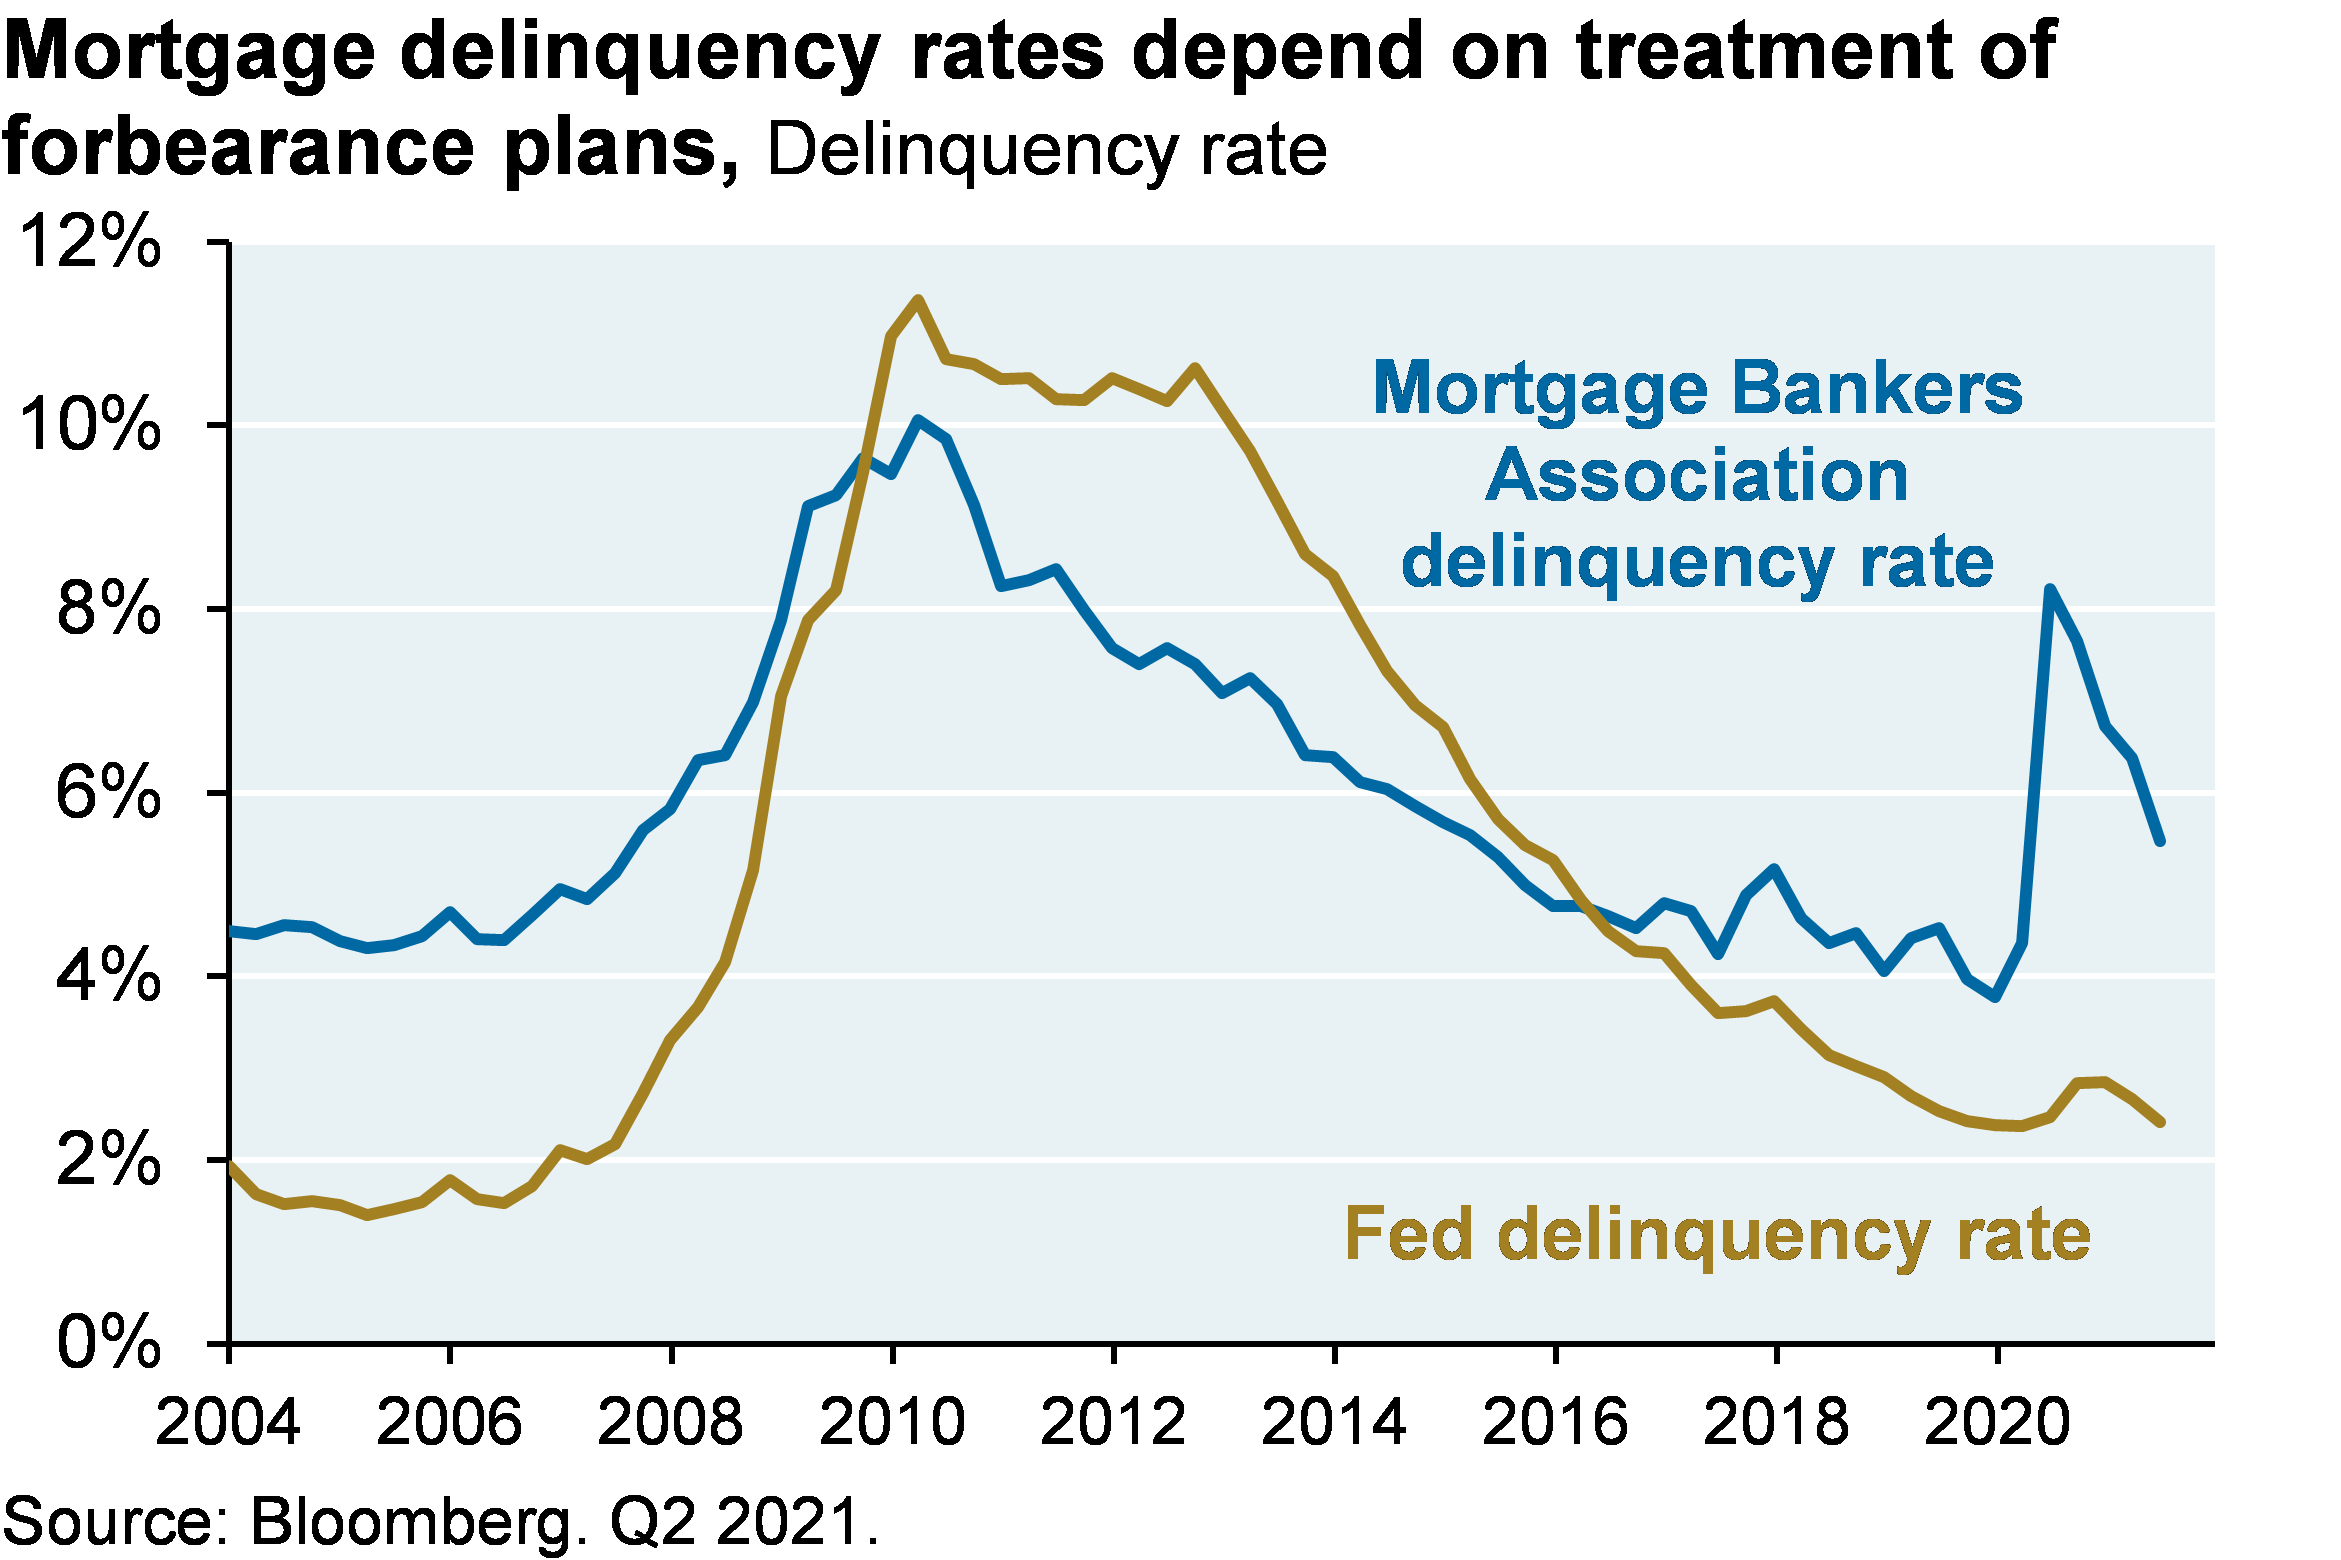 Line chart shows the gap between the Mortgage Bankers Association delinquency rate and the Fed delinquency rate. The MBA defines people deferring payments as delinquent whereas the Fed definition does not.